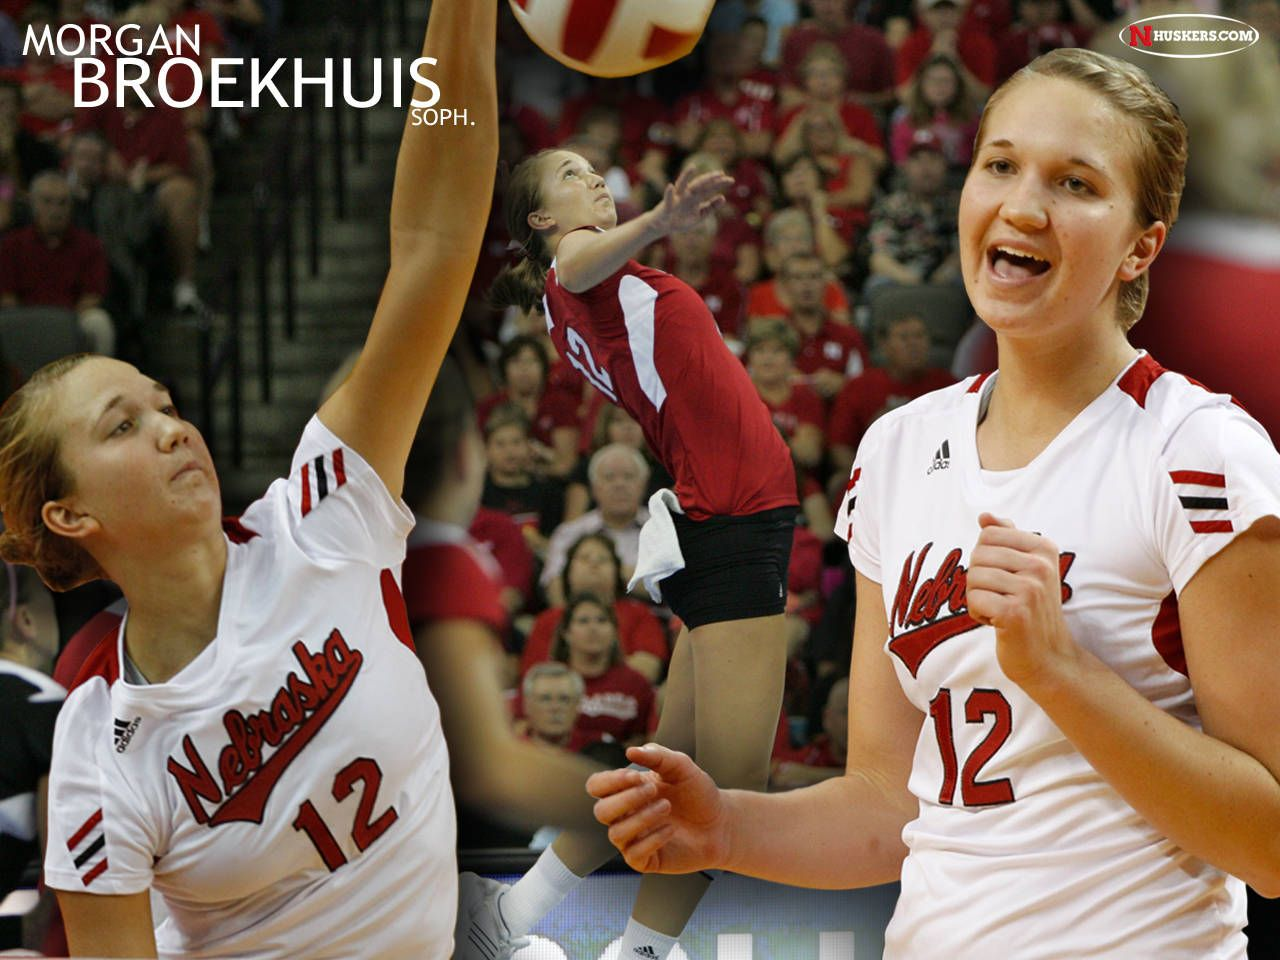 Volleyball Wallpapers Huskers Com Nebraska Athletics Official Web Site Volleyball Wallpaper Athlete Volleyball